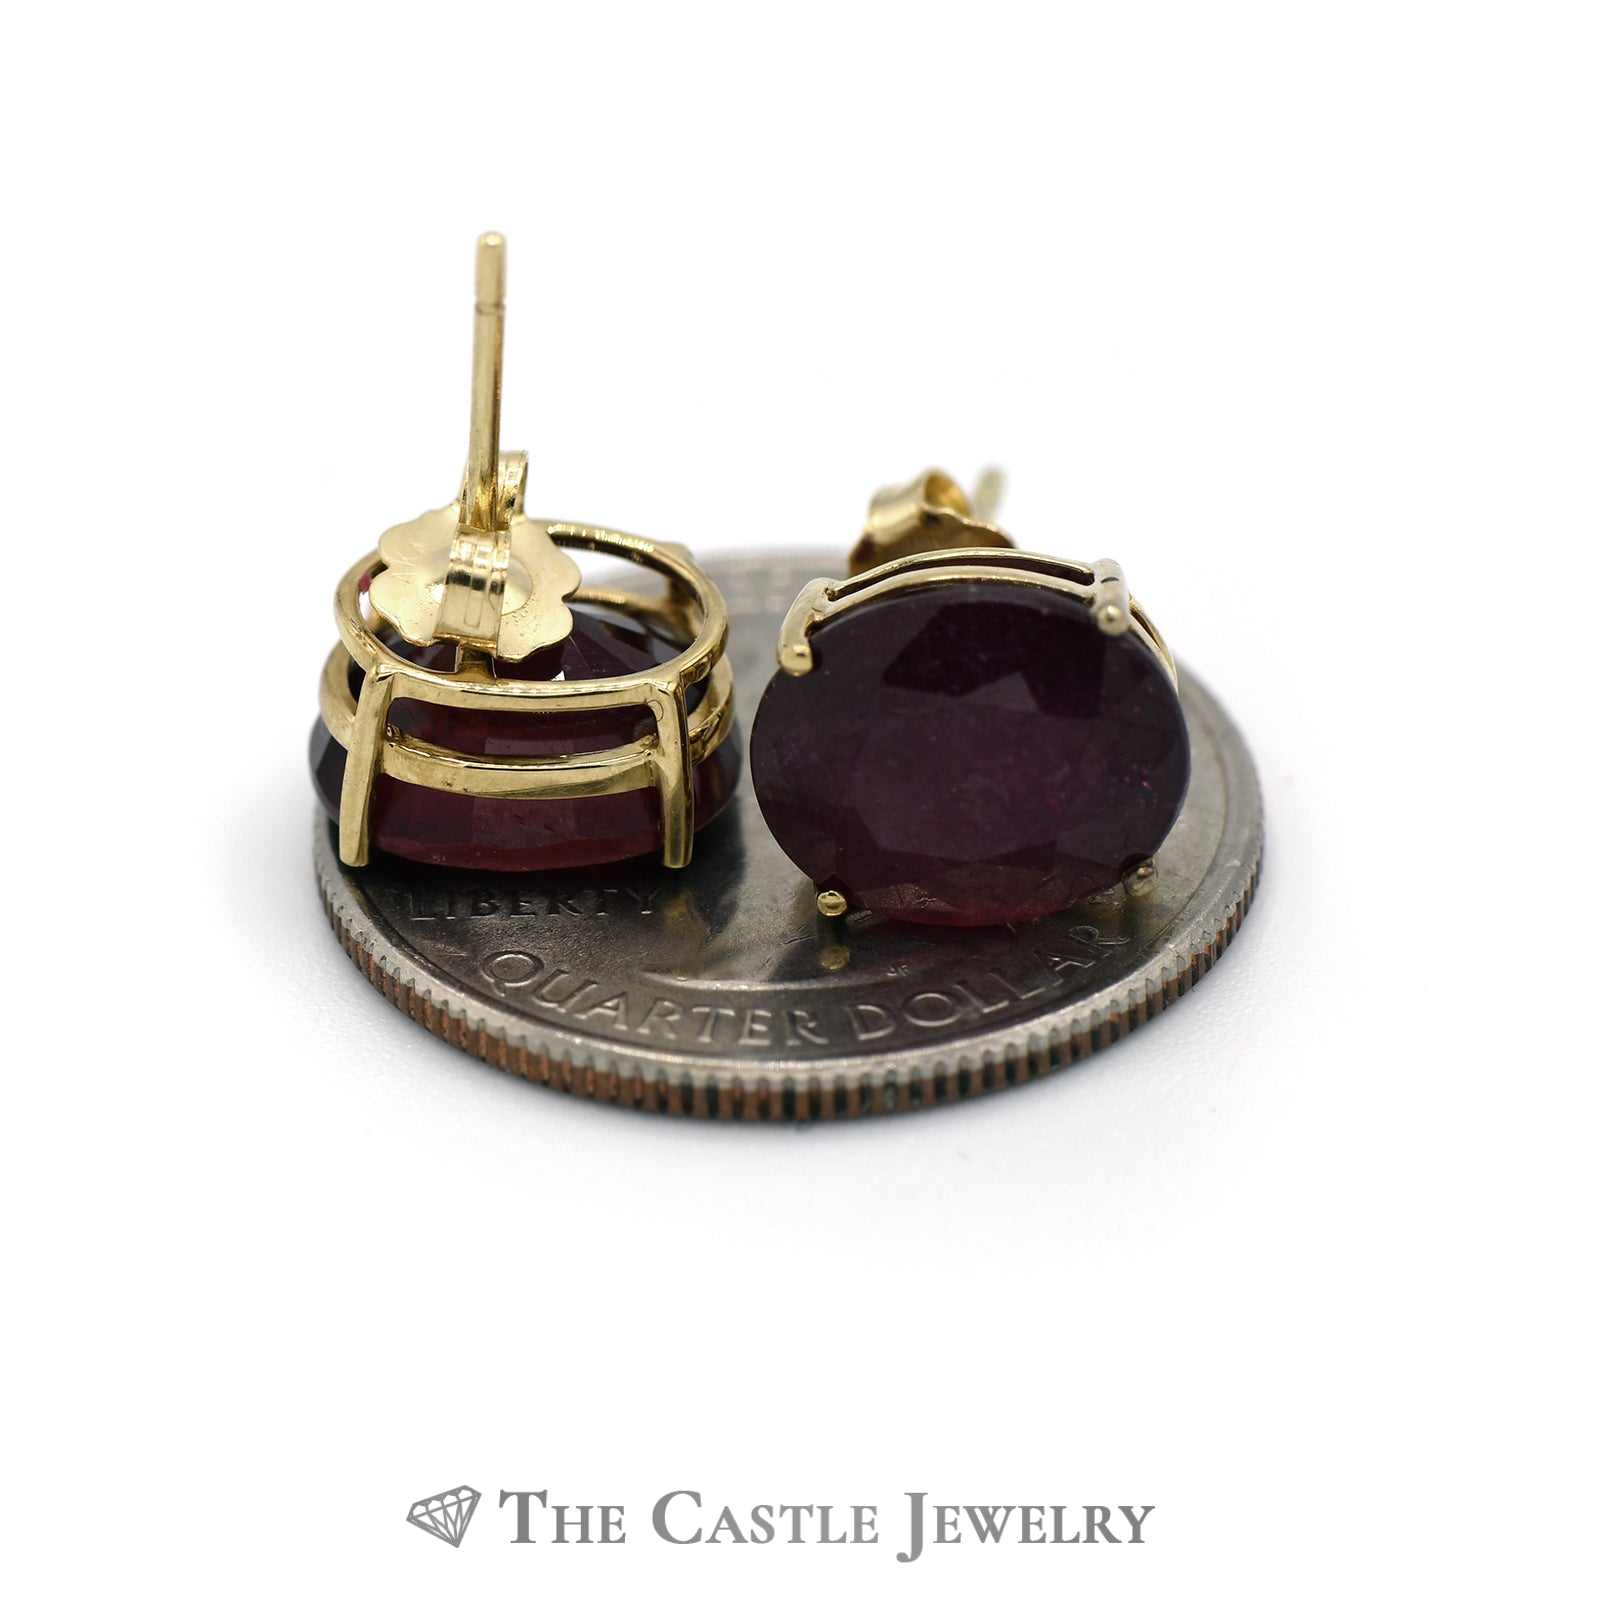 Oval Cut Ruby Stud Earrings in 4 Prong Mounting w/ Butterfly Backs Crafted in 14k Yellow Gold-1